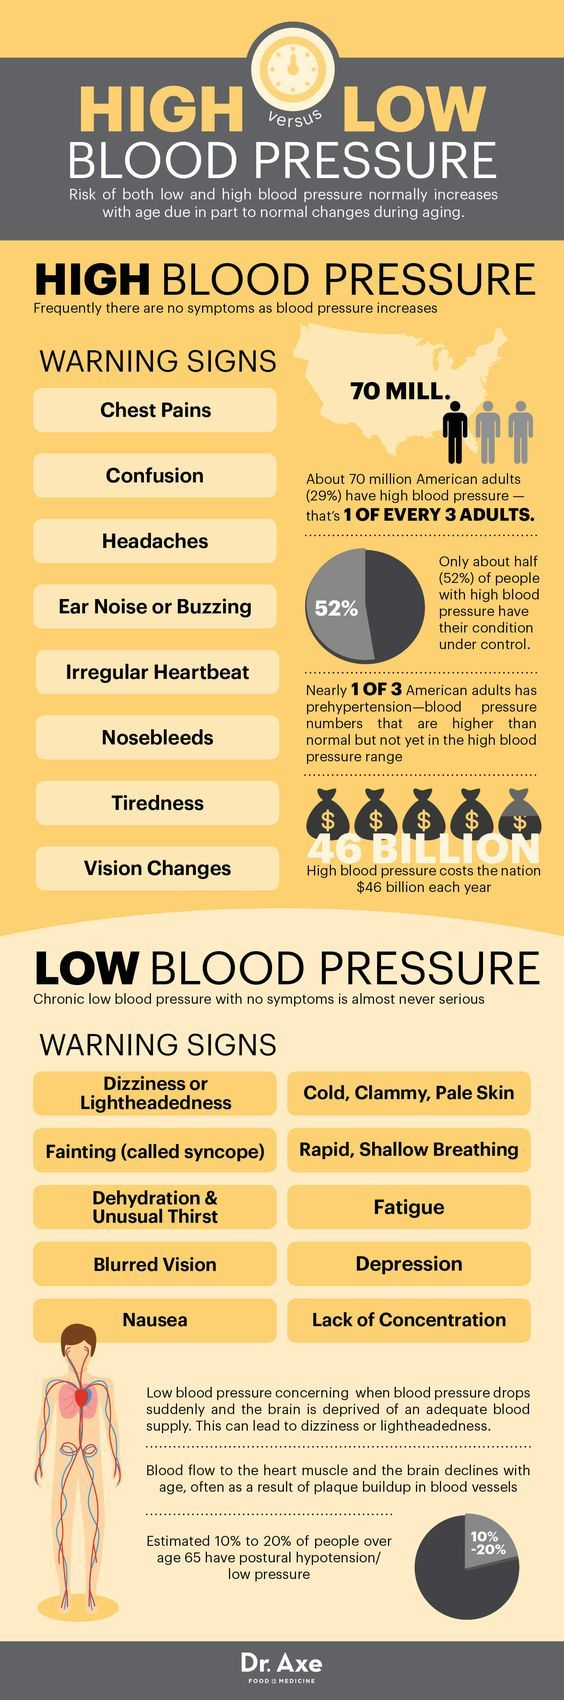 High Blood Pressure: Symptoms and Natural Prevention